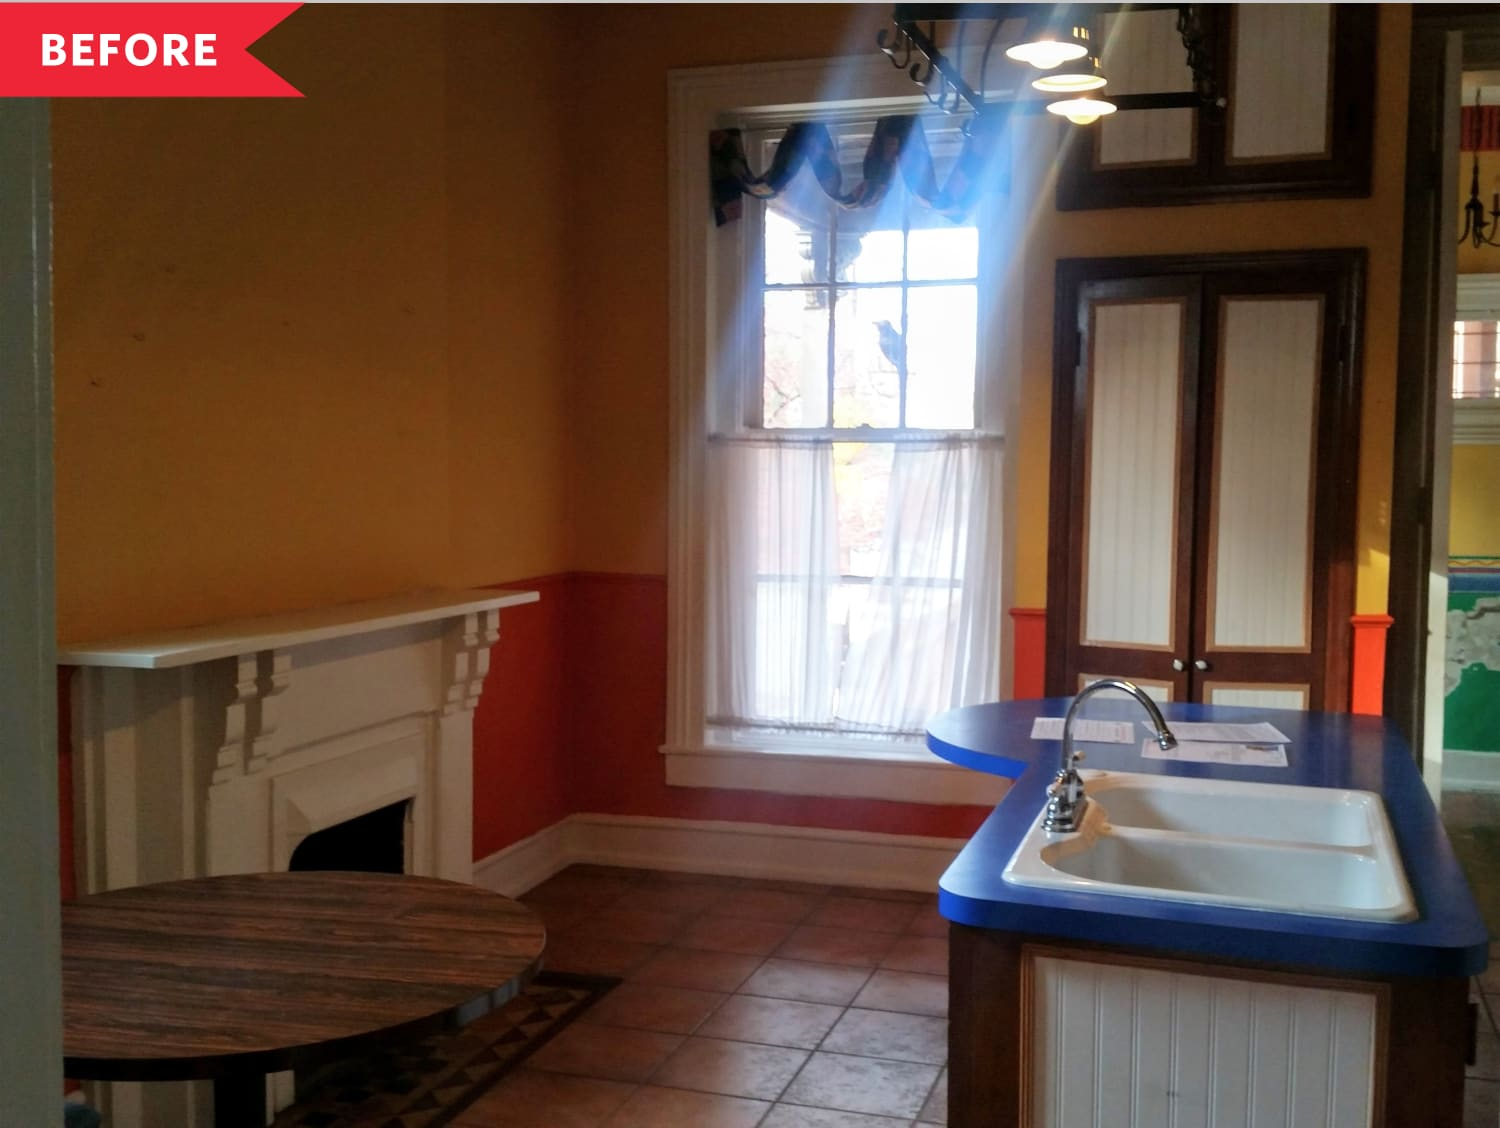 Before & After: A 'Crayola-Colored Nightmare' Victorian House Gets an Incredible Transformation